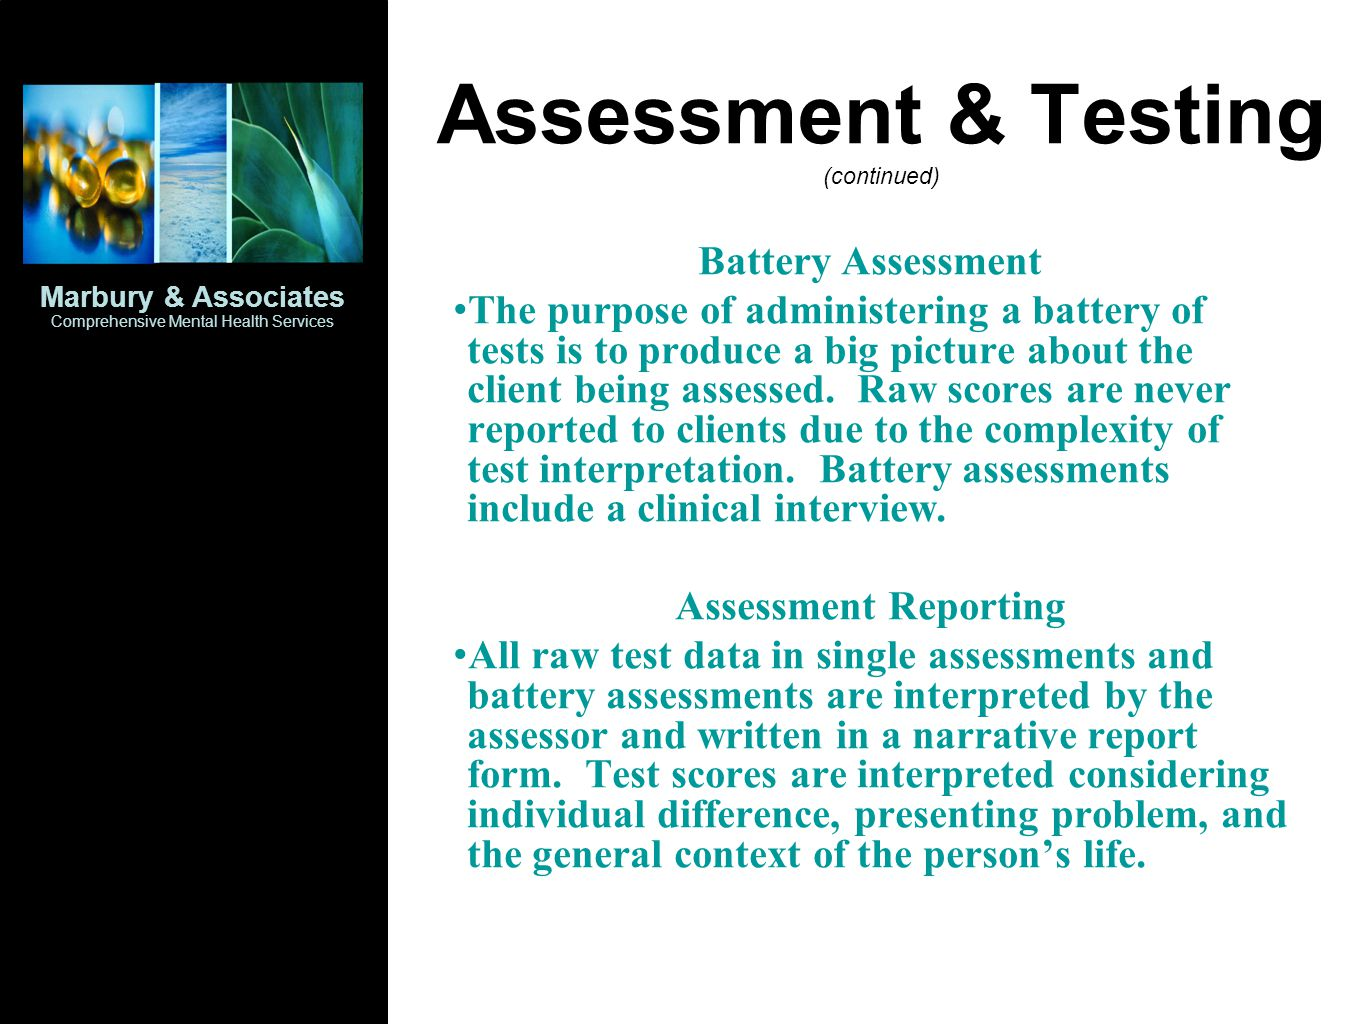 Assessment & Testing (continued)